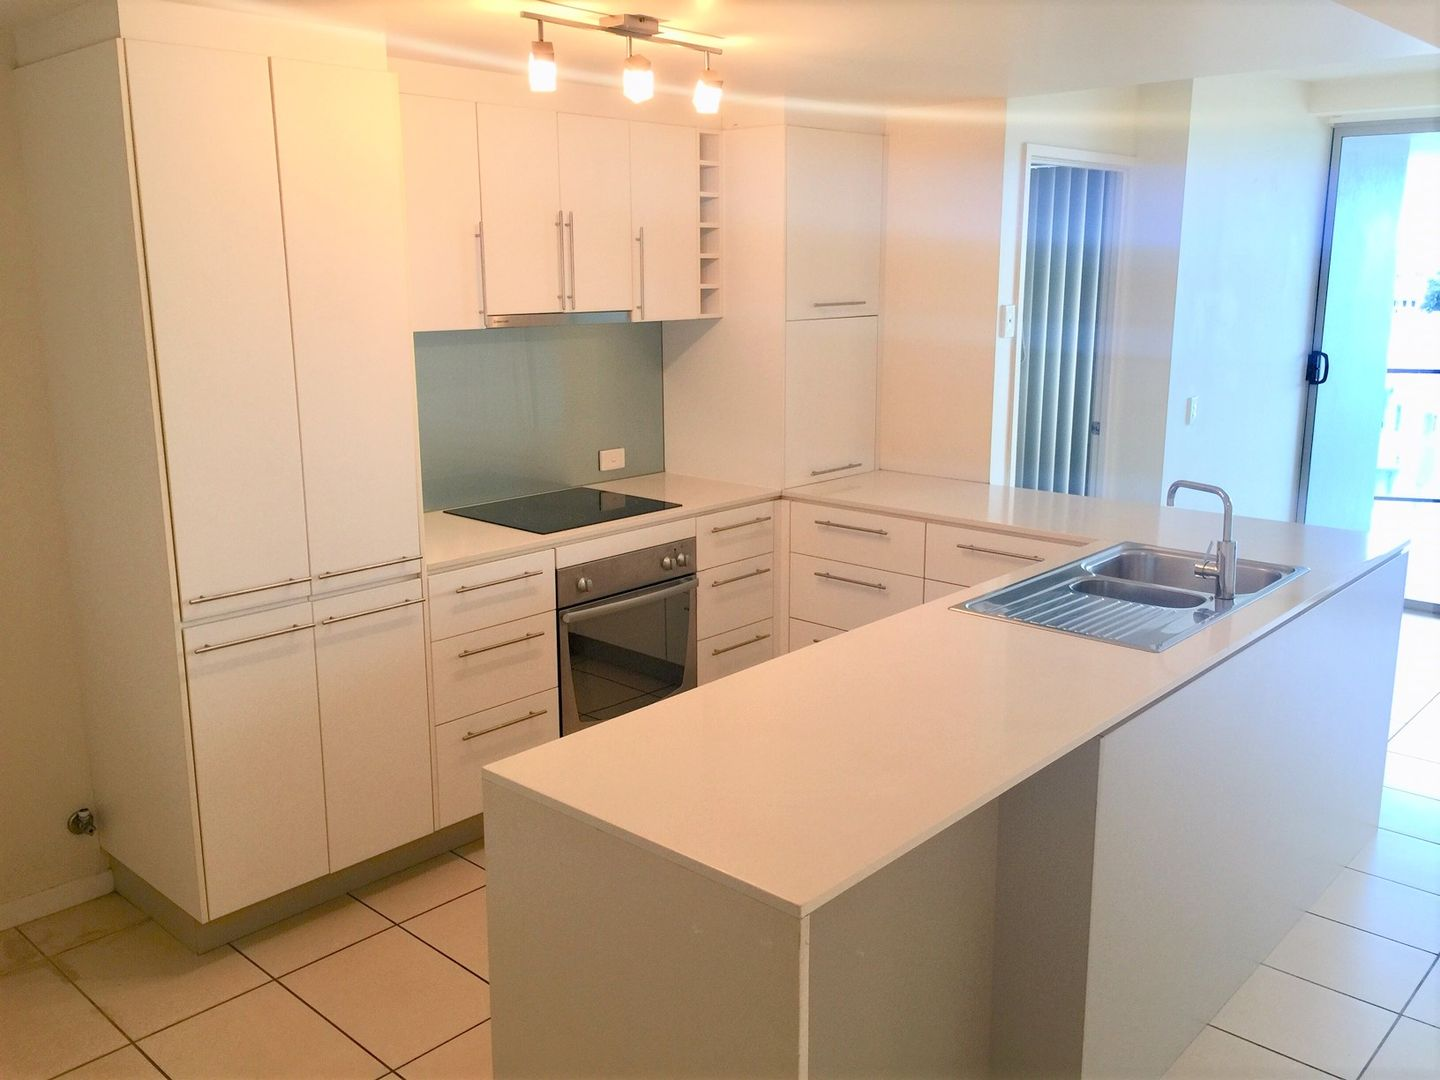 22/8-32 Stanley Street, Townsville City QLD 4810, Image 1